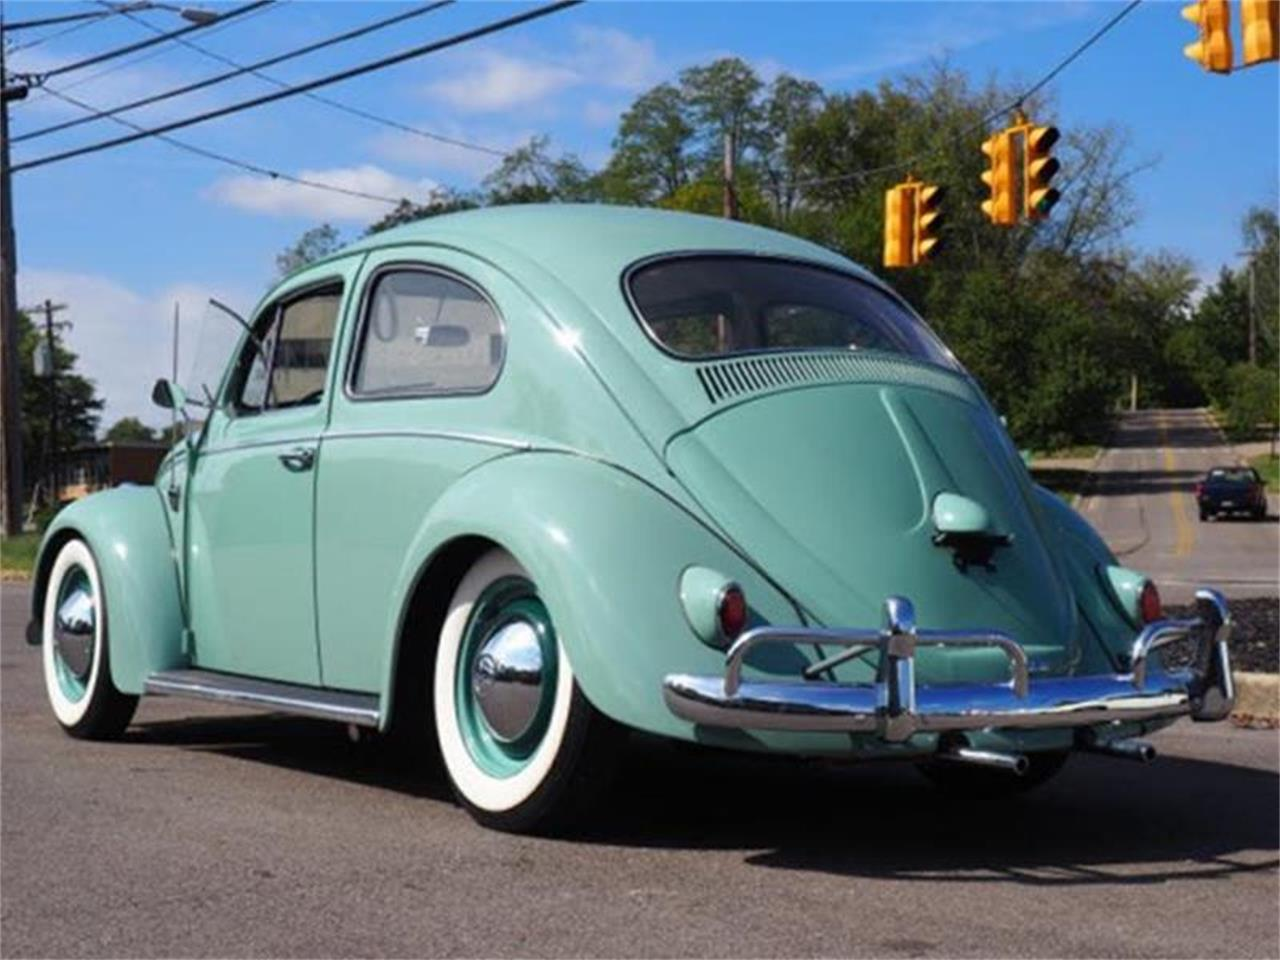 Large Picture of 1961 Beetle located in Loveland Ohio - $19,999.00 Offered by Cincinnati Auto Wholesale - MBMH